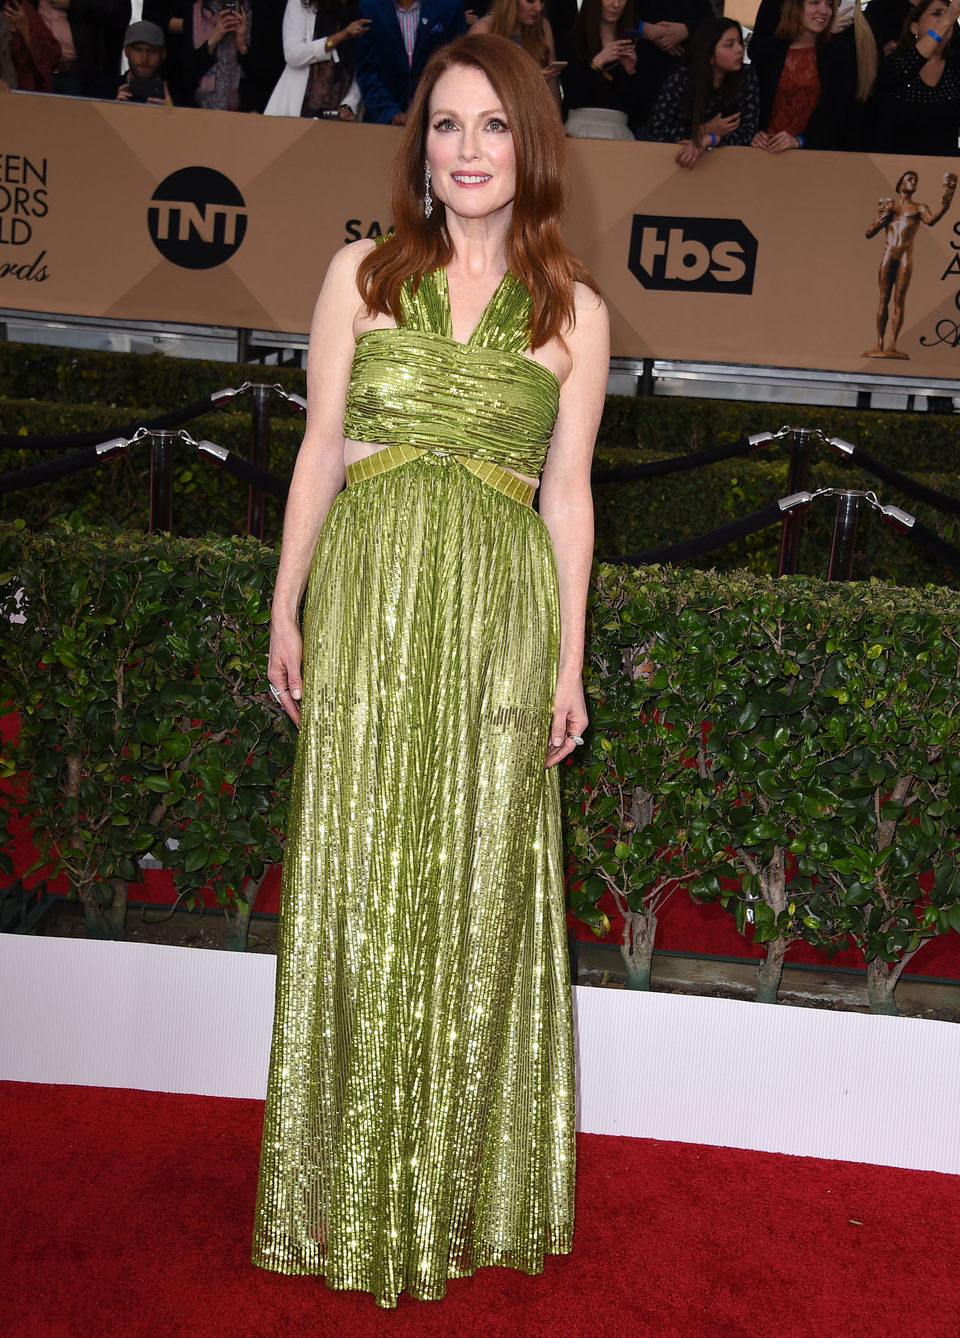 Julianne Moore at the SAG Awards 2016 red carpet